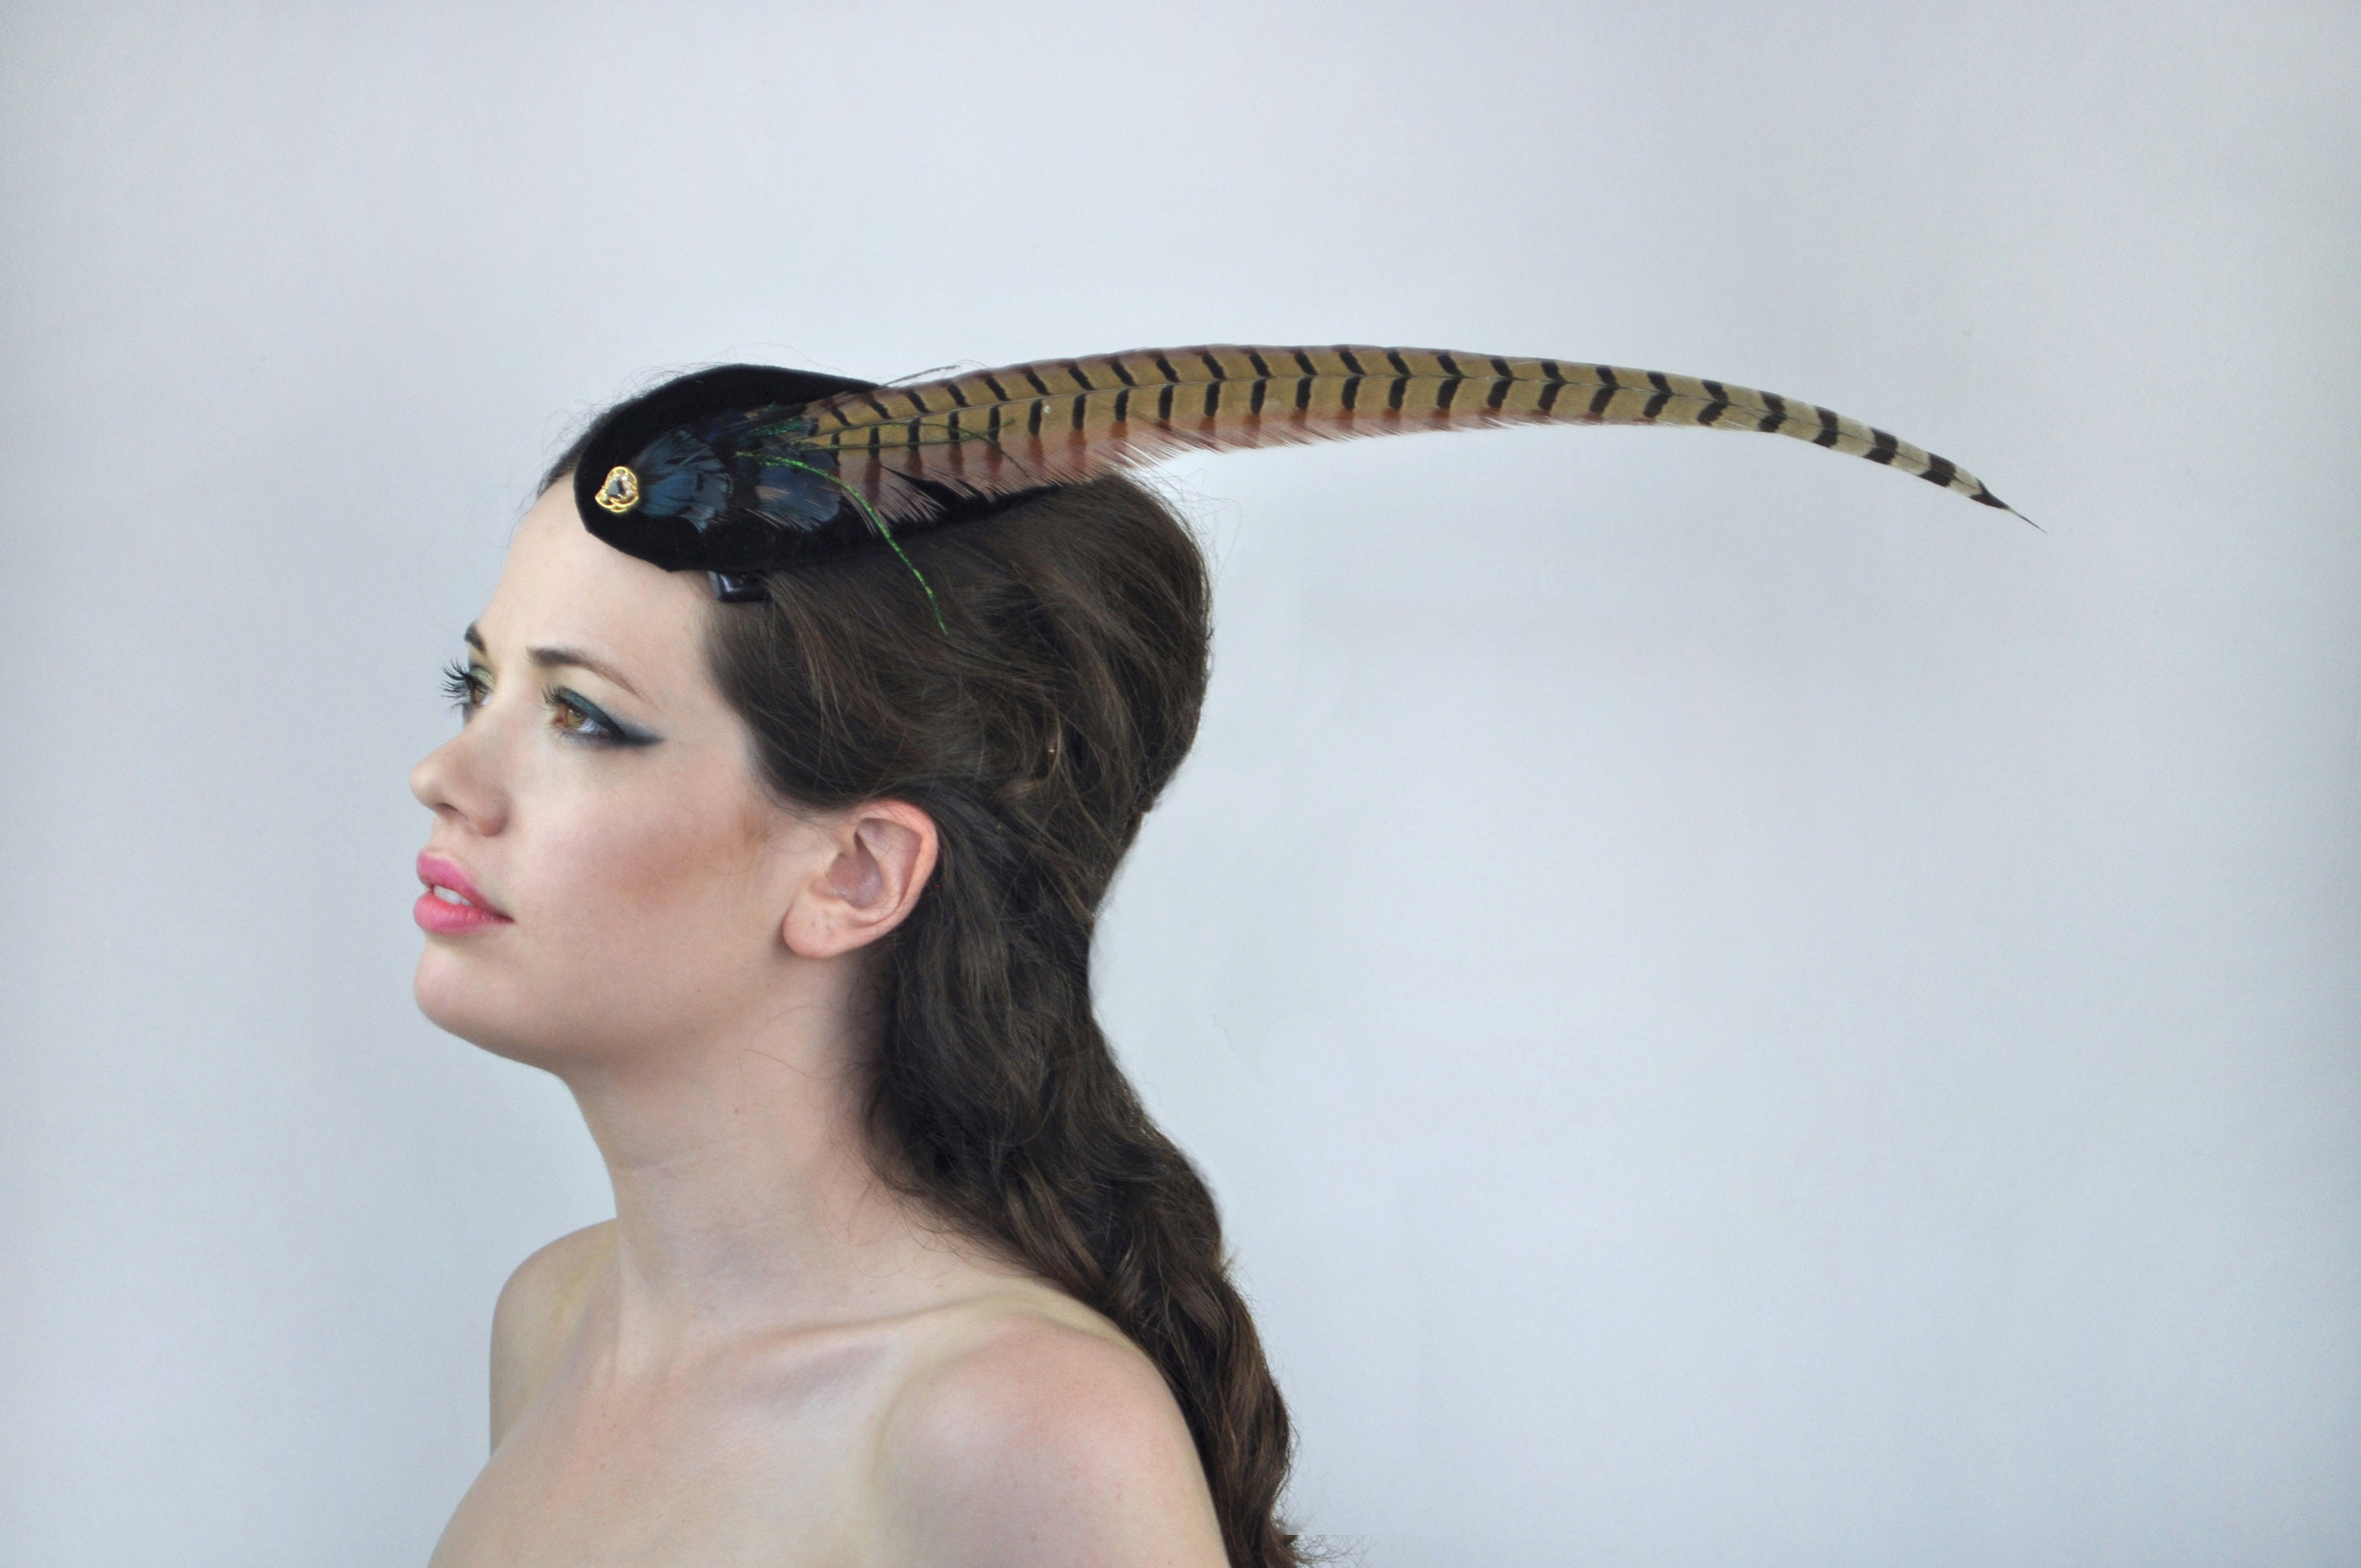 6b7a8523a4bf4 Feather Fascinator in Black Velvet with Iridescent Feathers and Gold ...